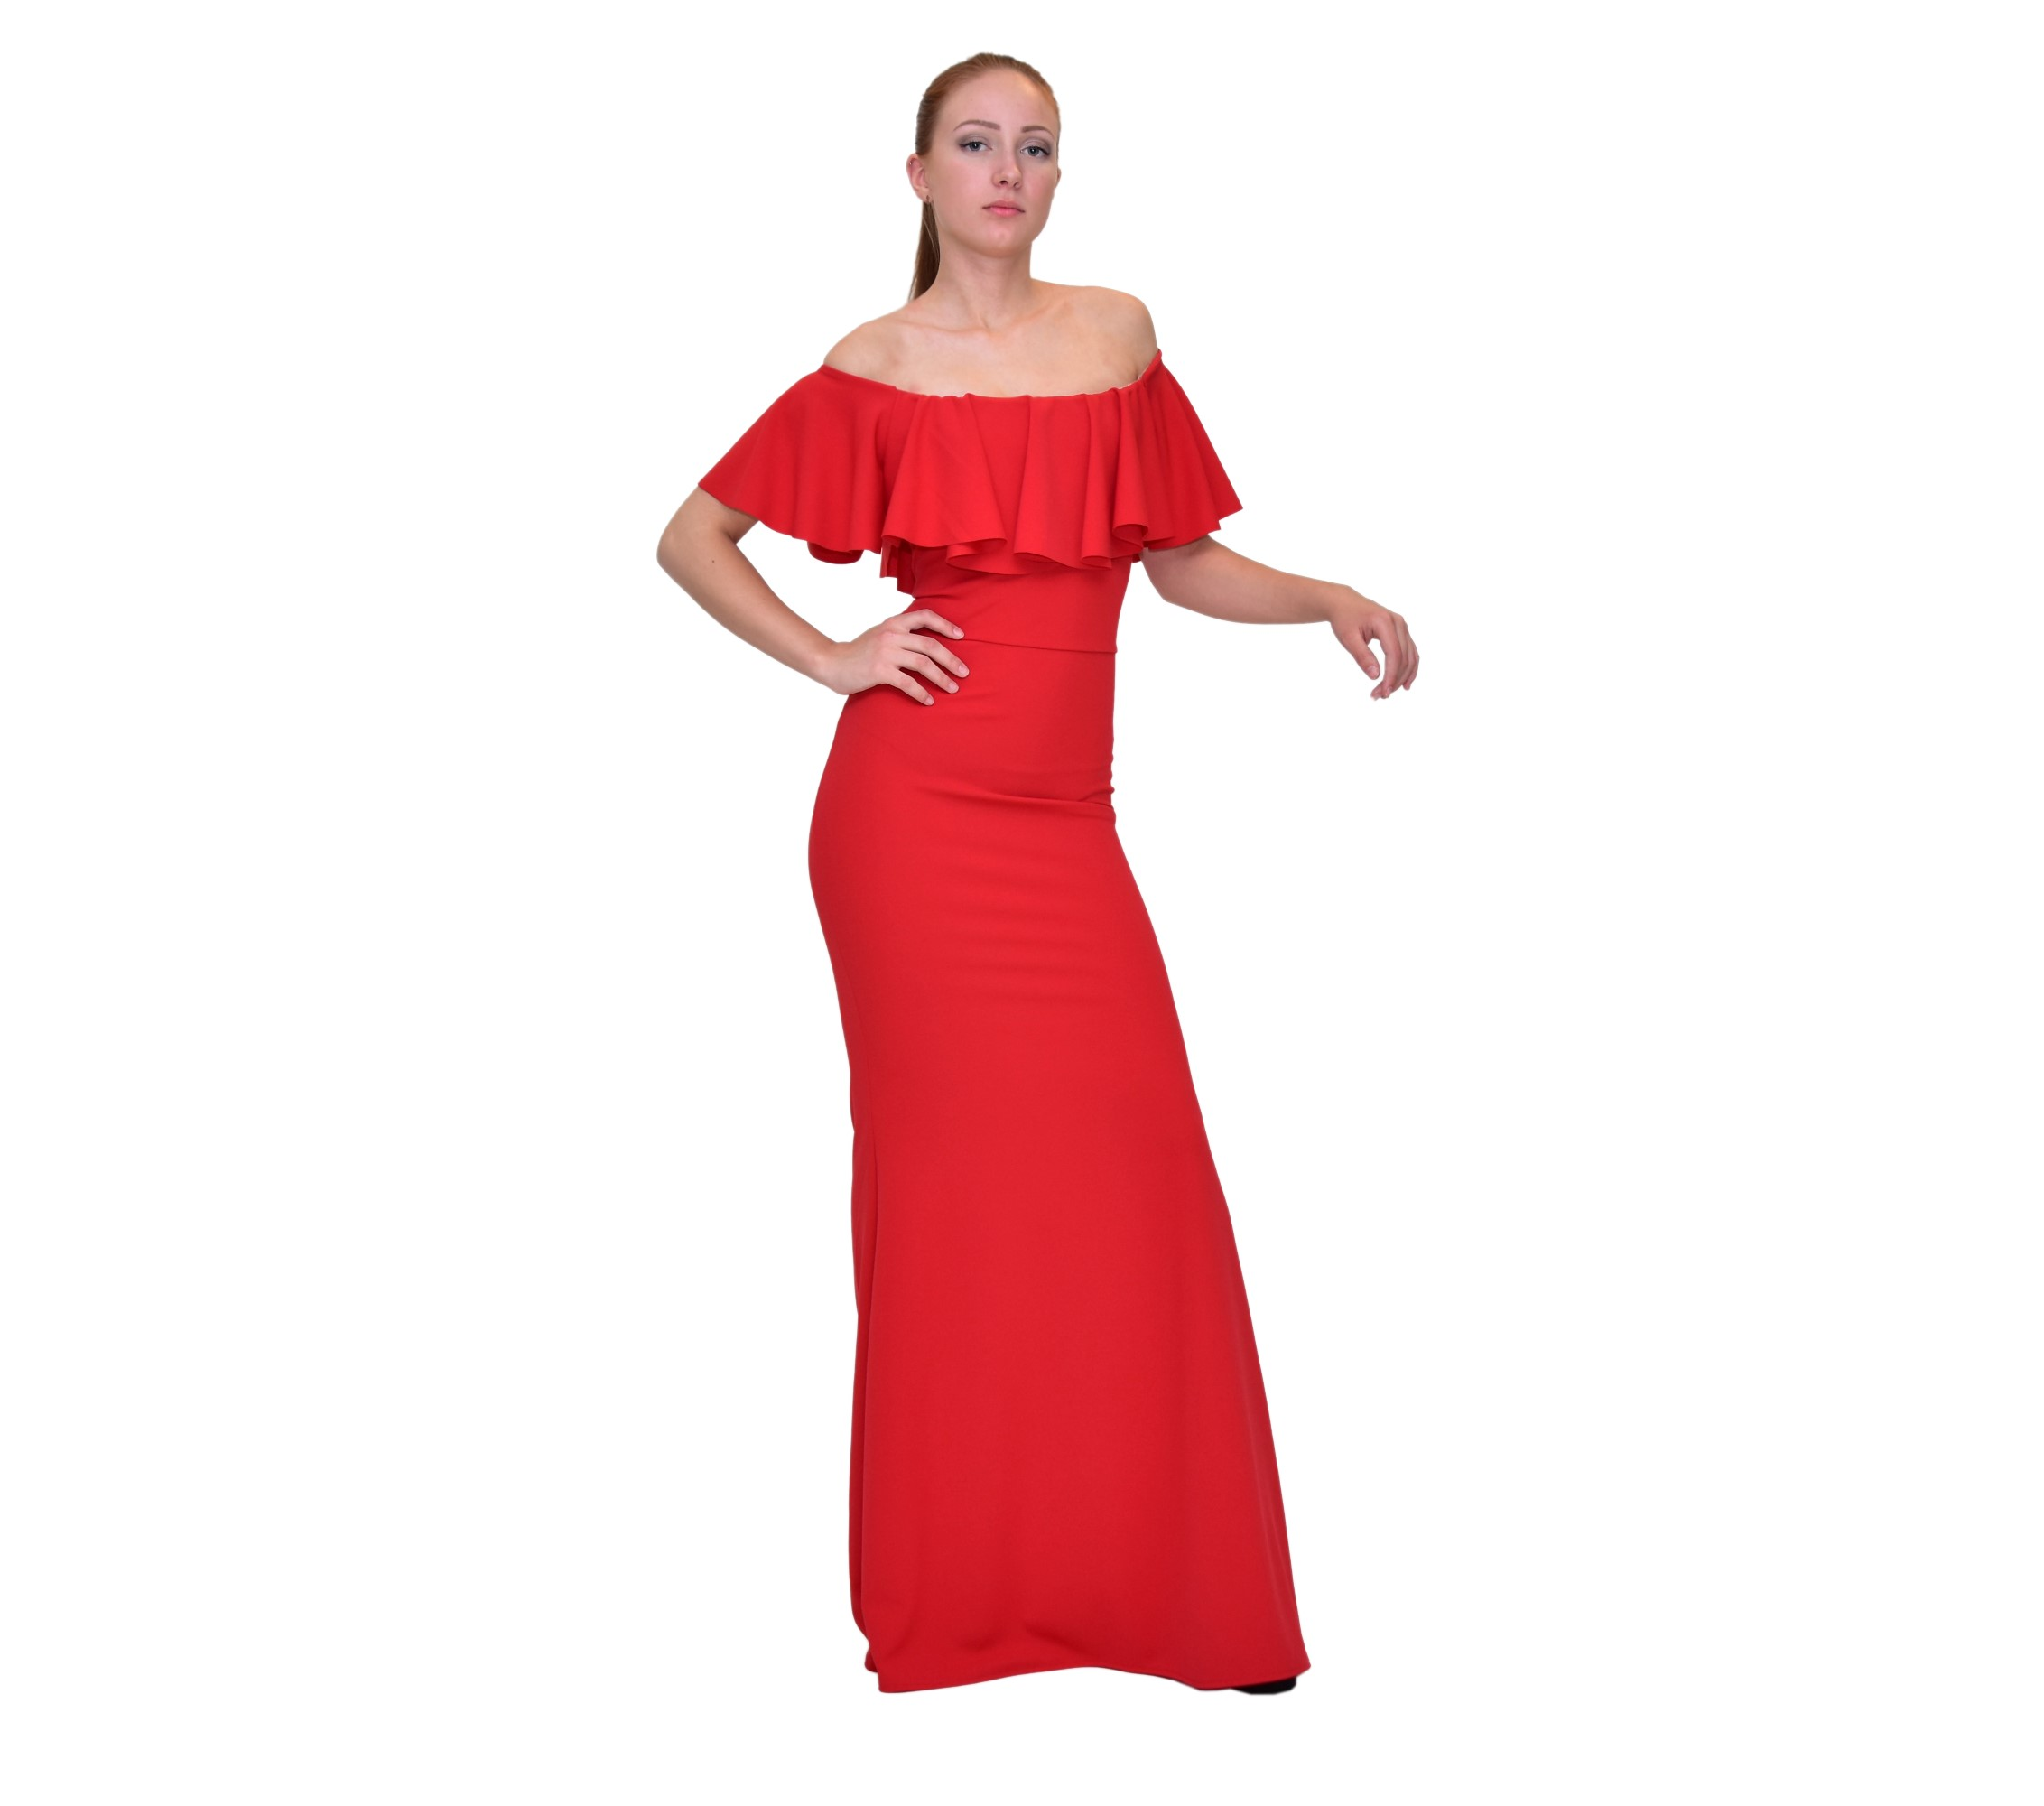 buy online cc0ee 666b0 Damen Elegante Party-Kleid Meerjungfrau Cocktailkleid in Lang